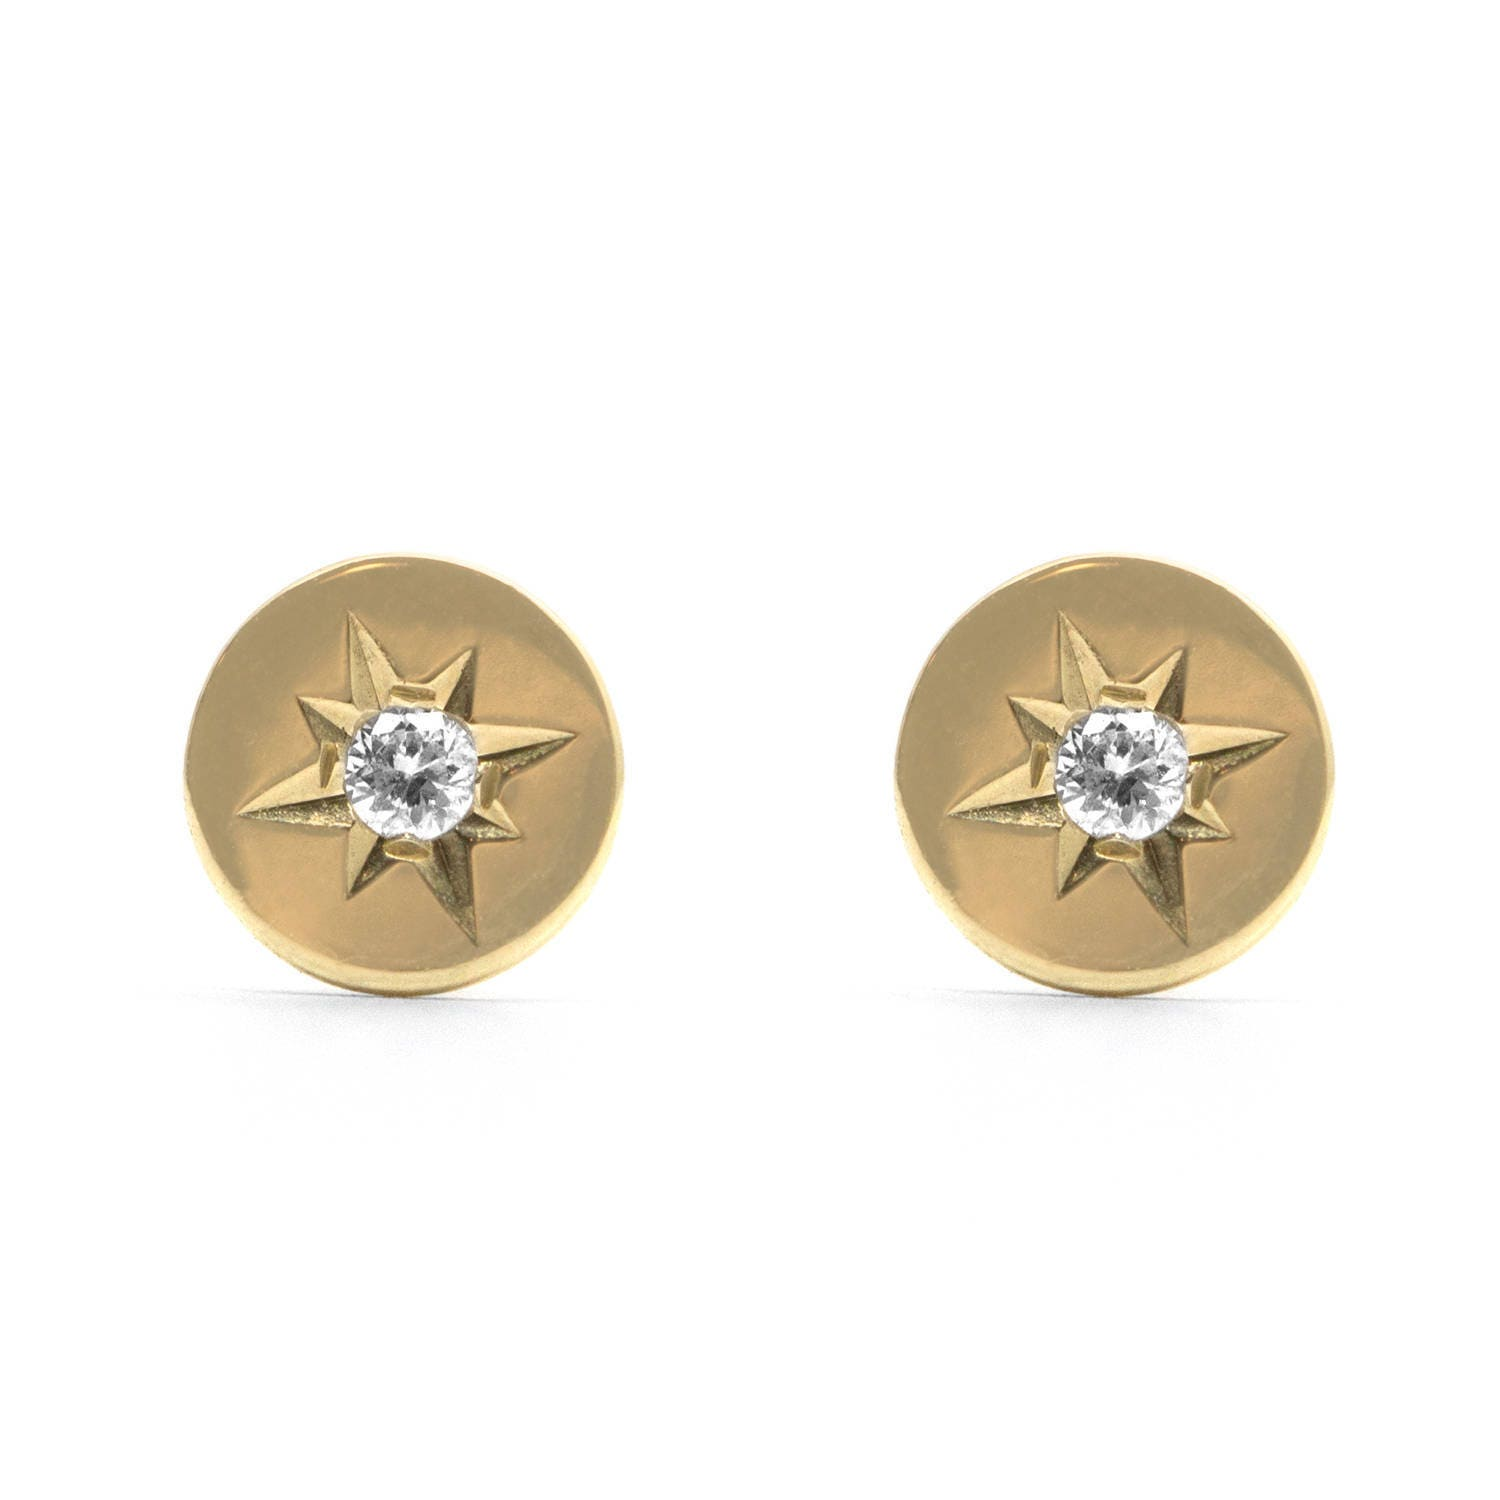 arteak white stud tiny dsc earrings product jewelry gold